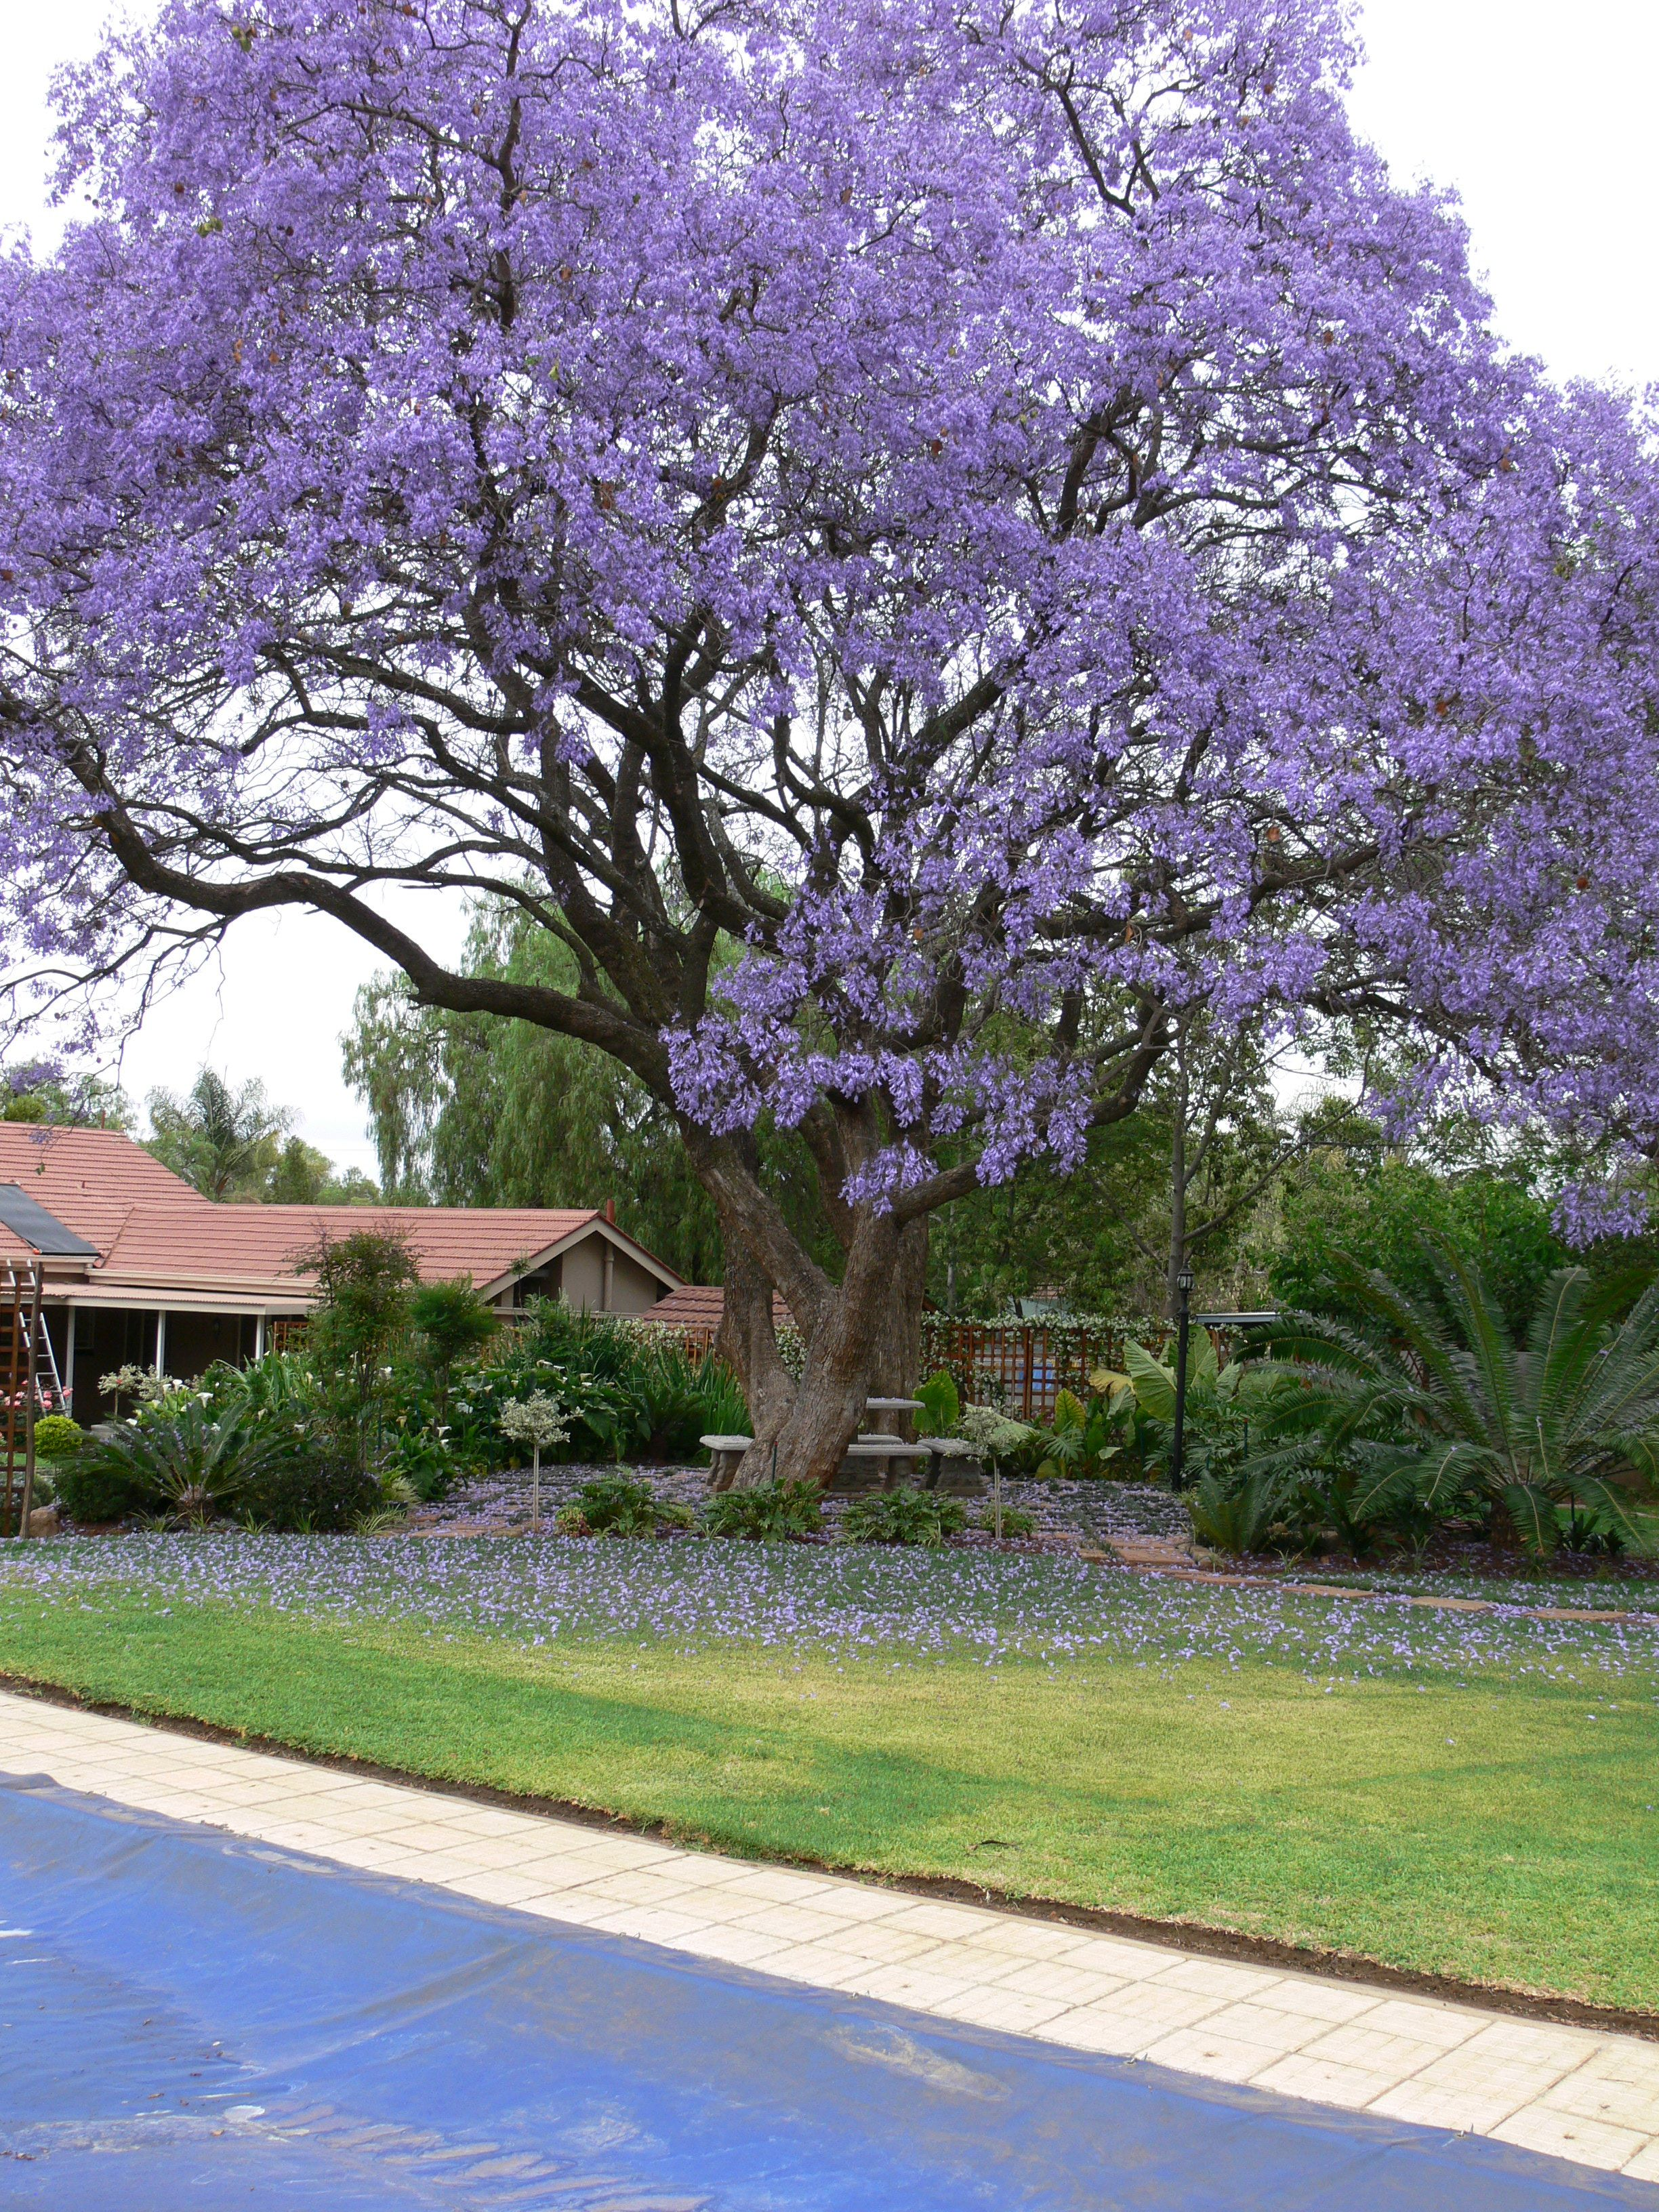 Jacaranda Tree Purple Flowers Peak In May Native To South America